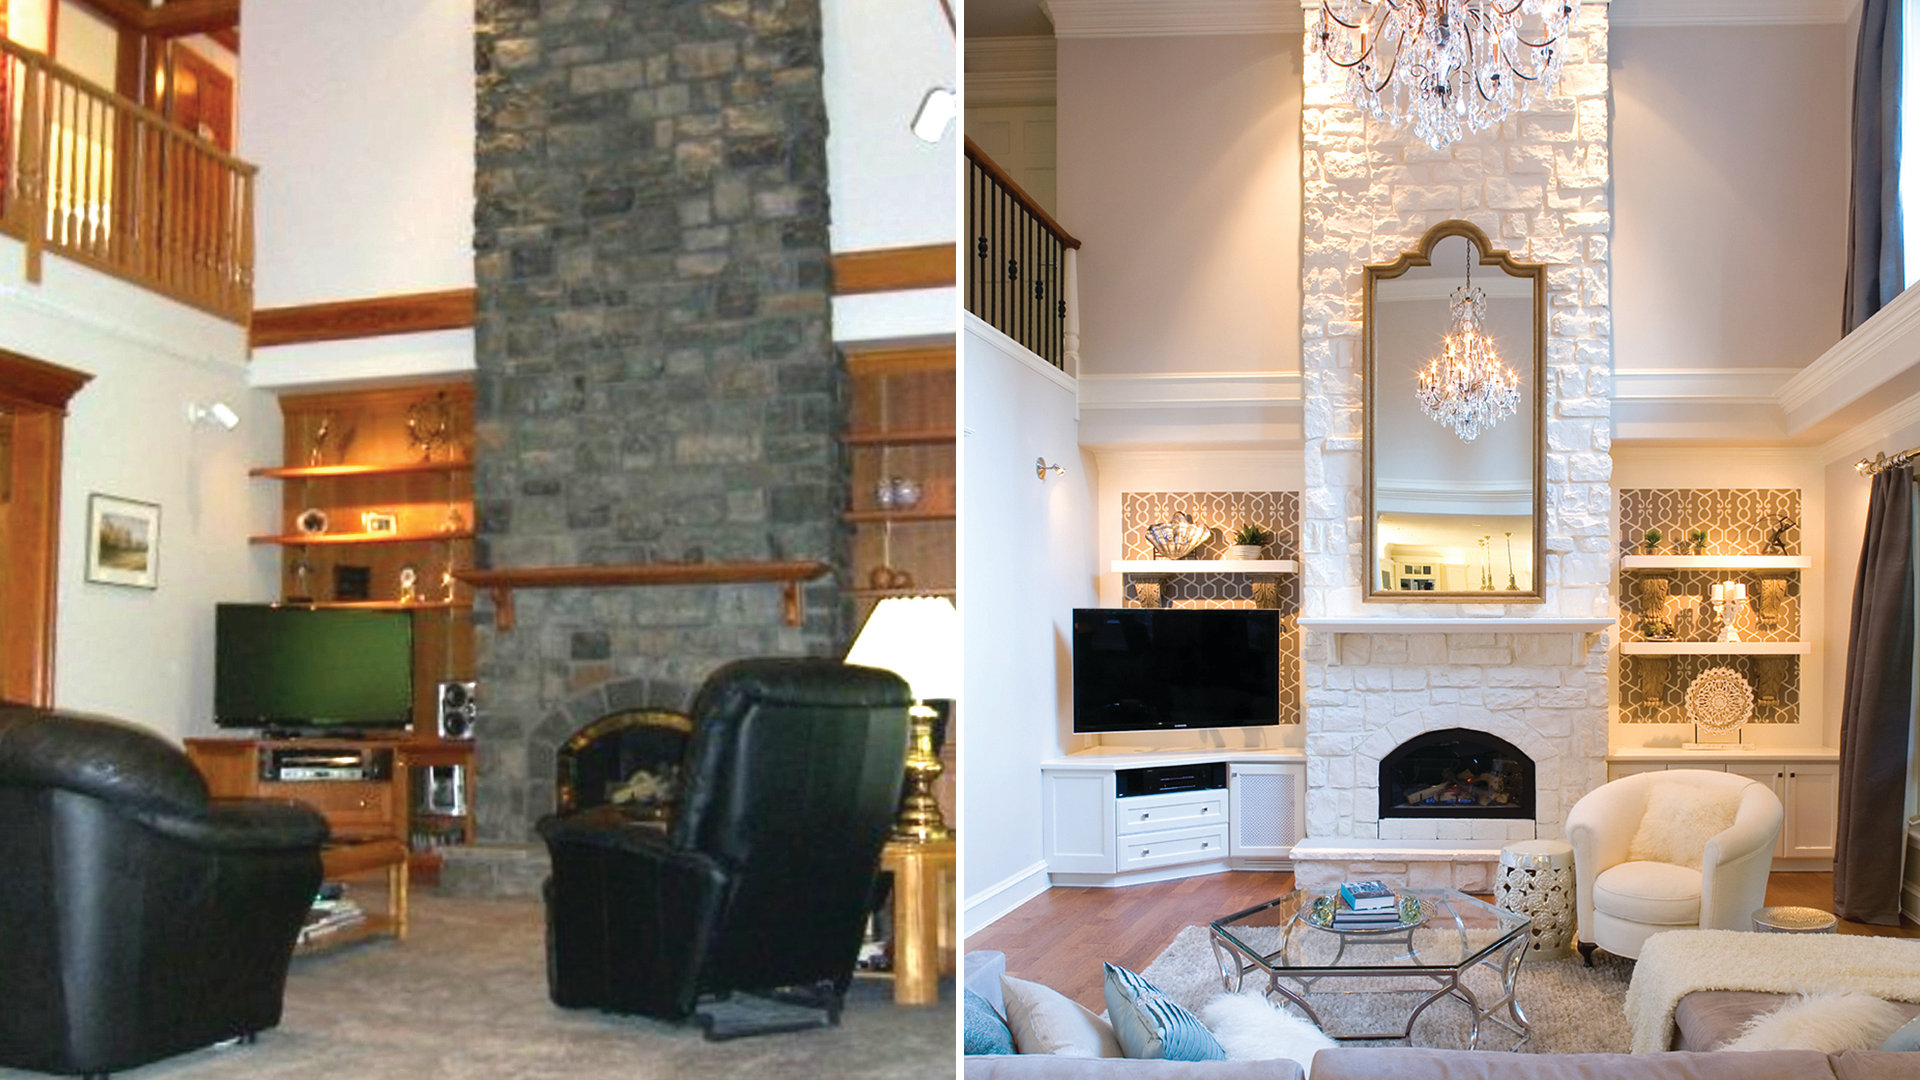 Before And After Interior Design Photos Living Room Makeovers Interior Designers Share Beforeandafter